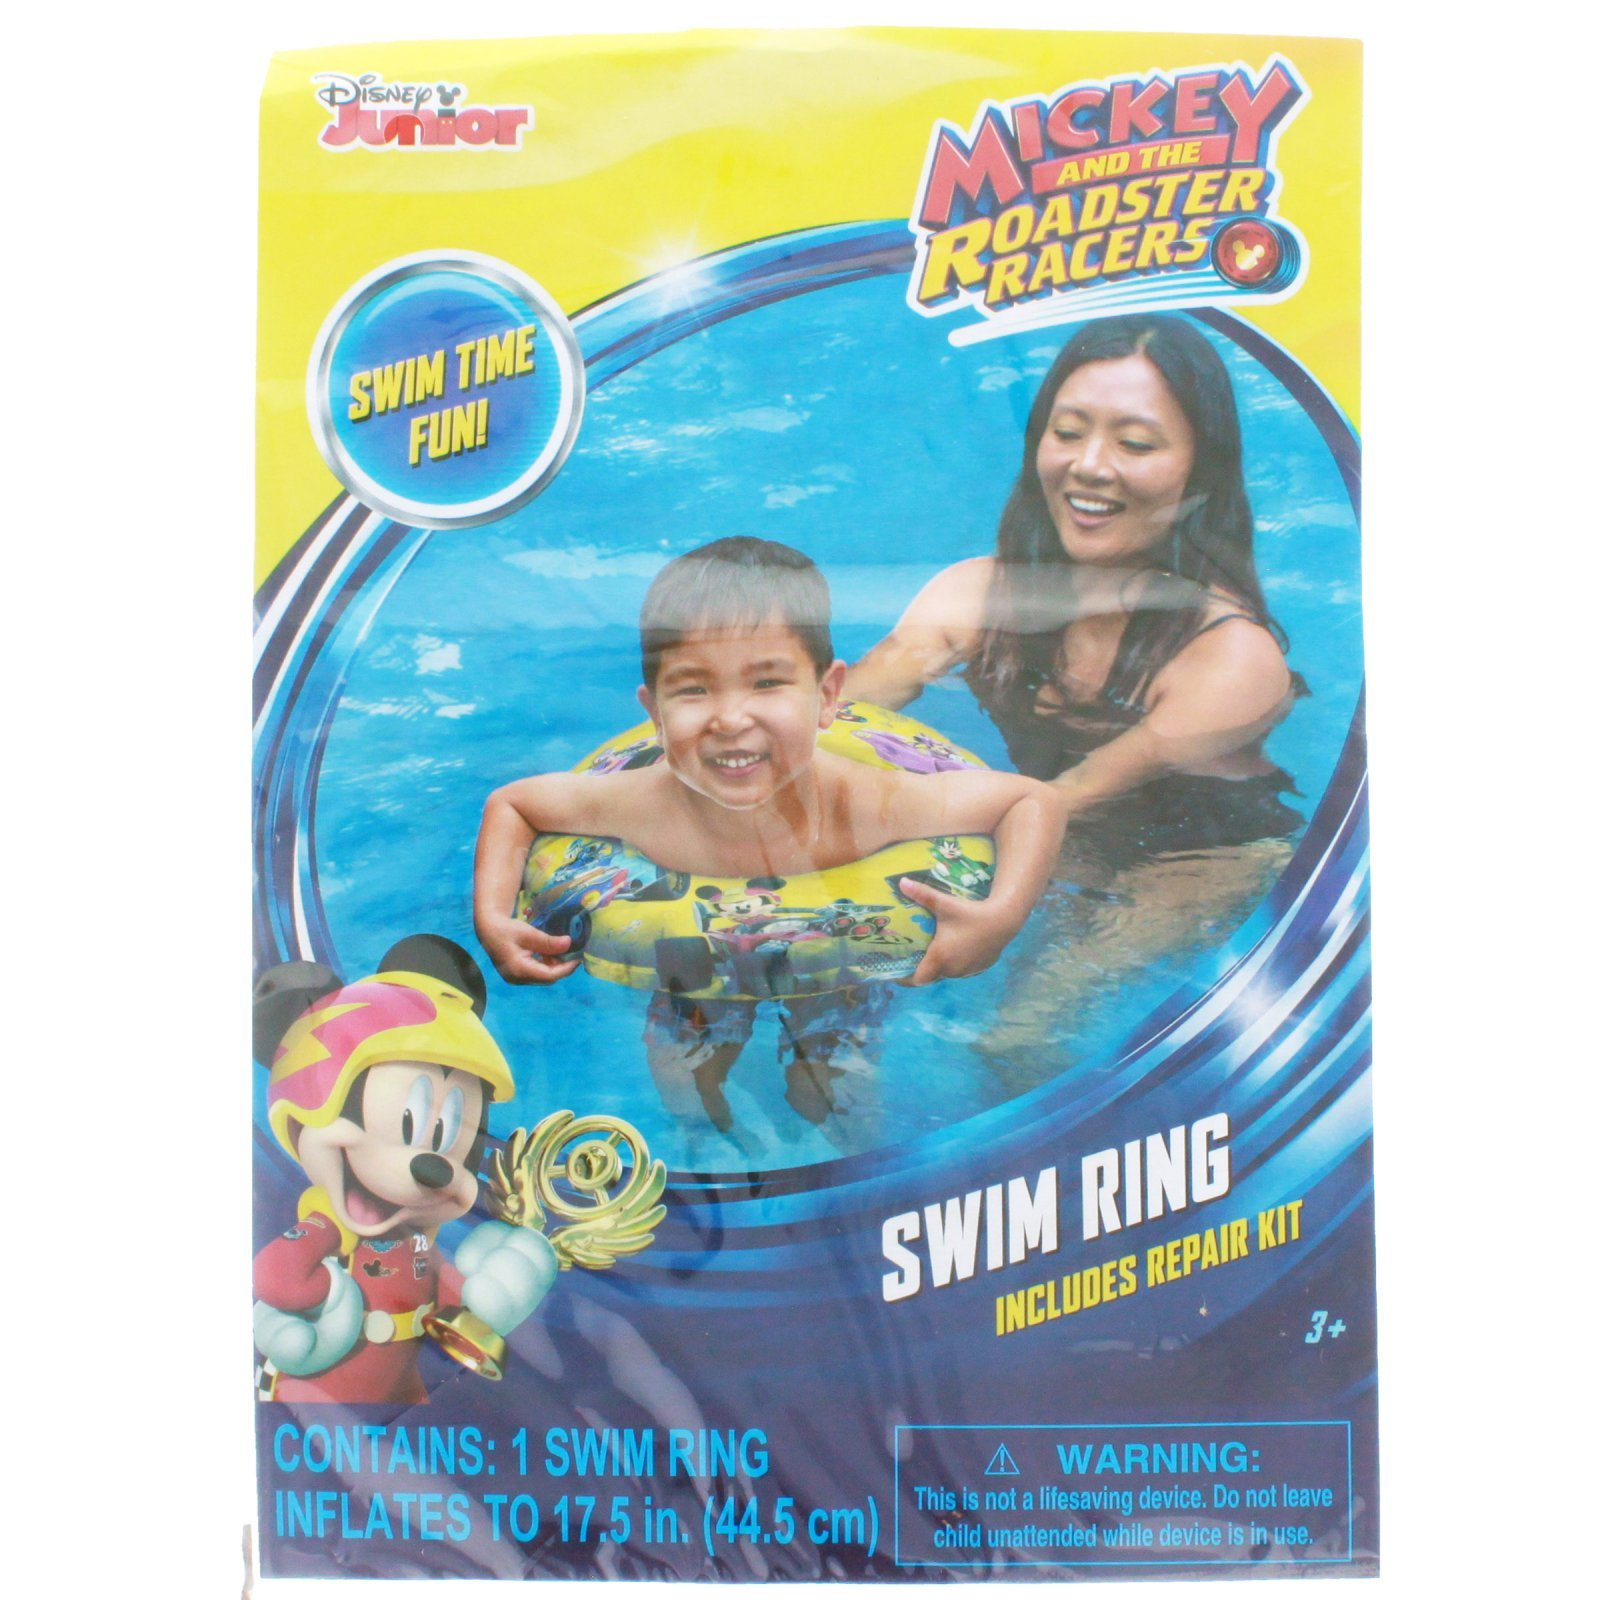 Mickey Mouse Roadster Racer Inflatable Swim Ring